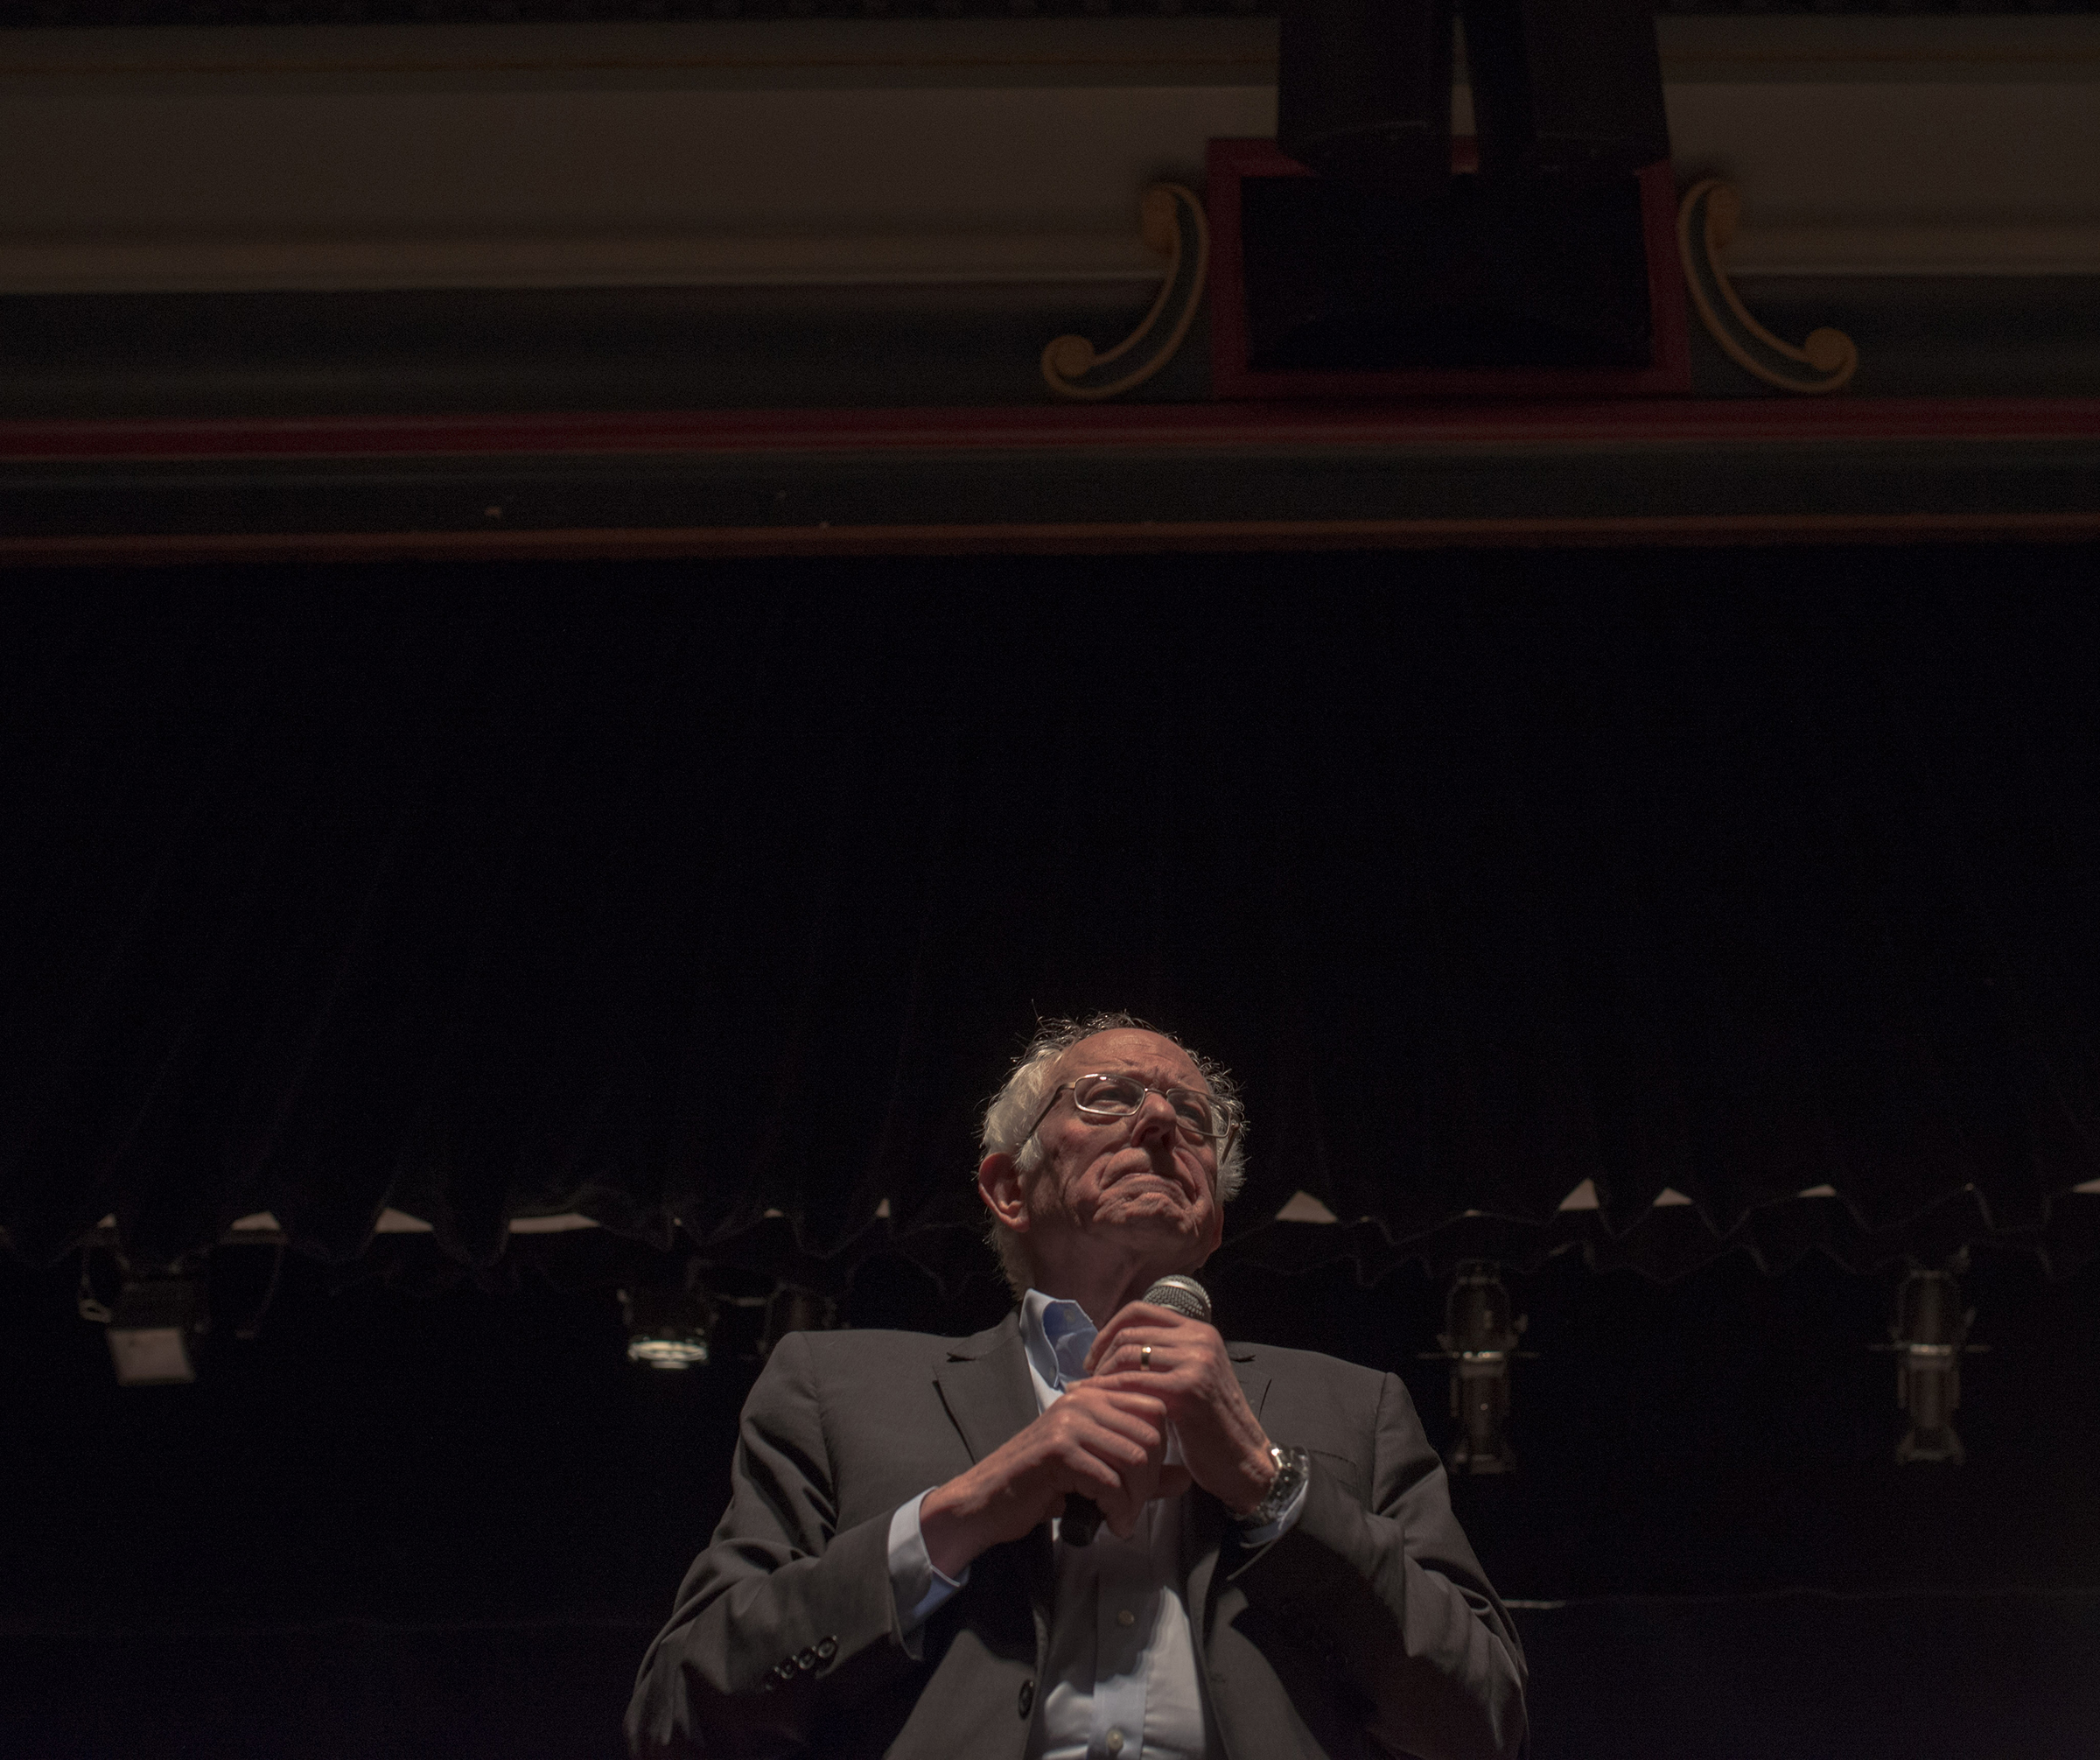 Sanders addresses supporters at a rally in Ames on Jan. 26